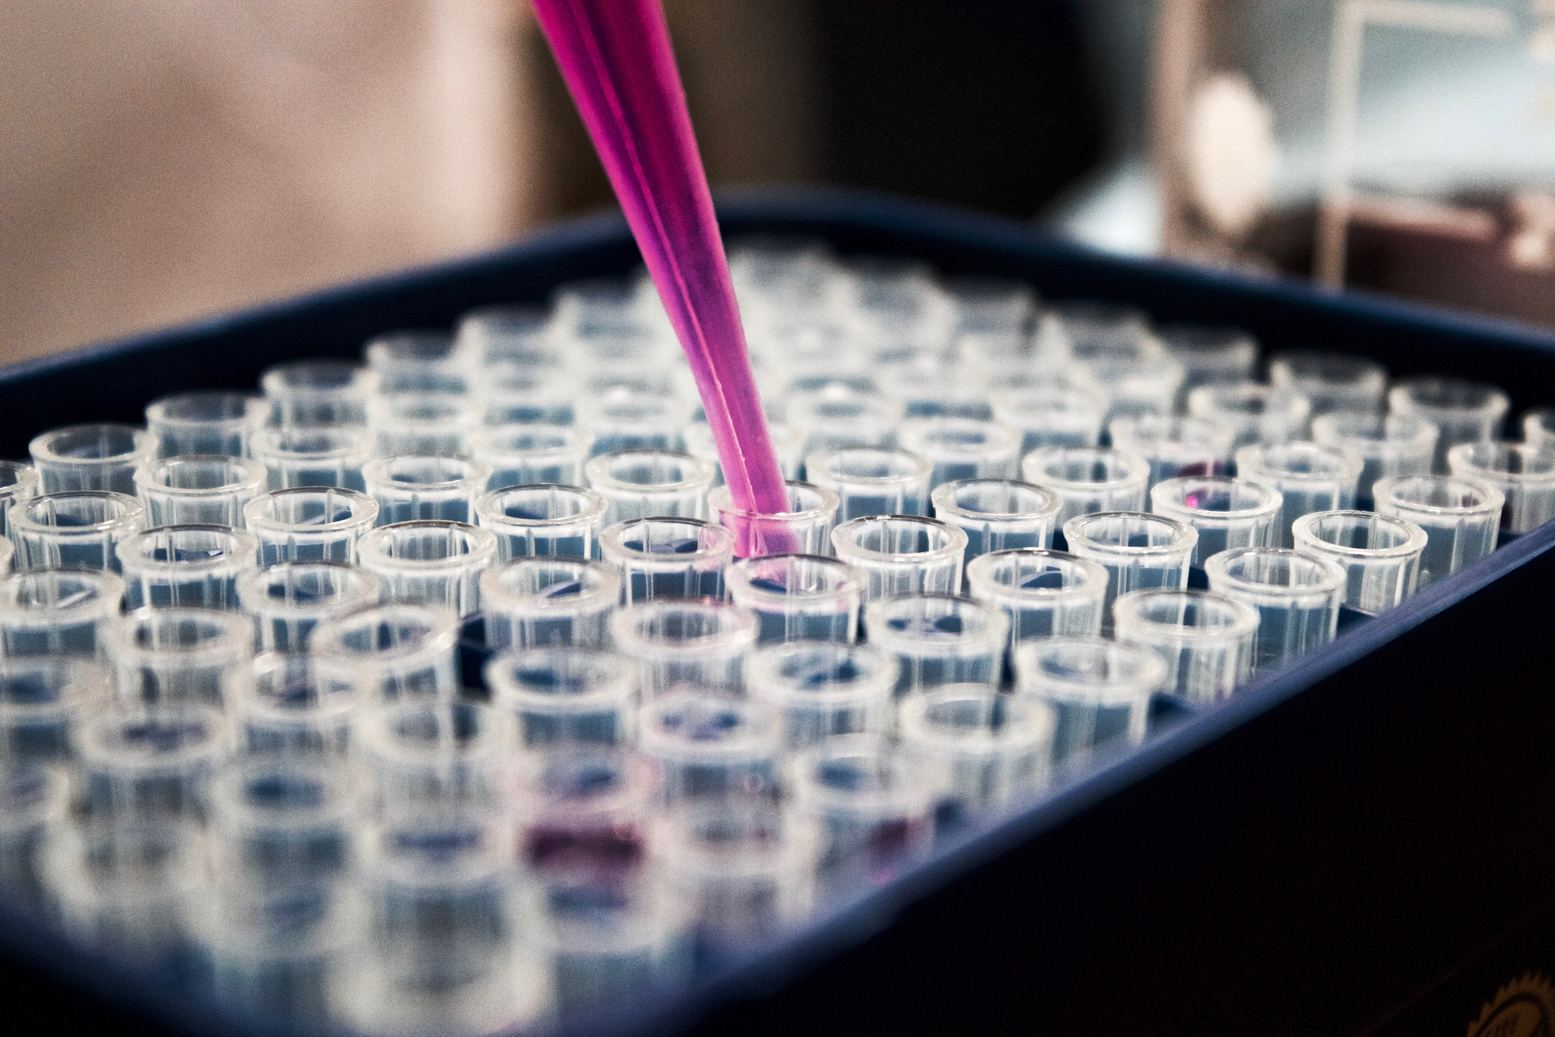 A pipette putting pink liquid in one of many test tubes